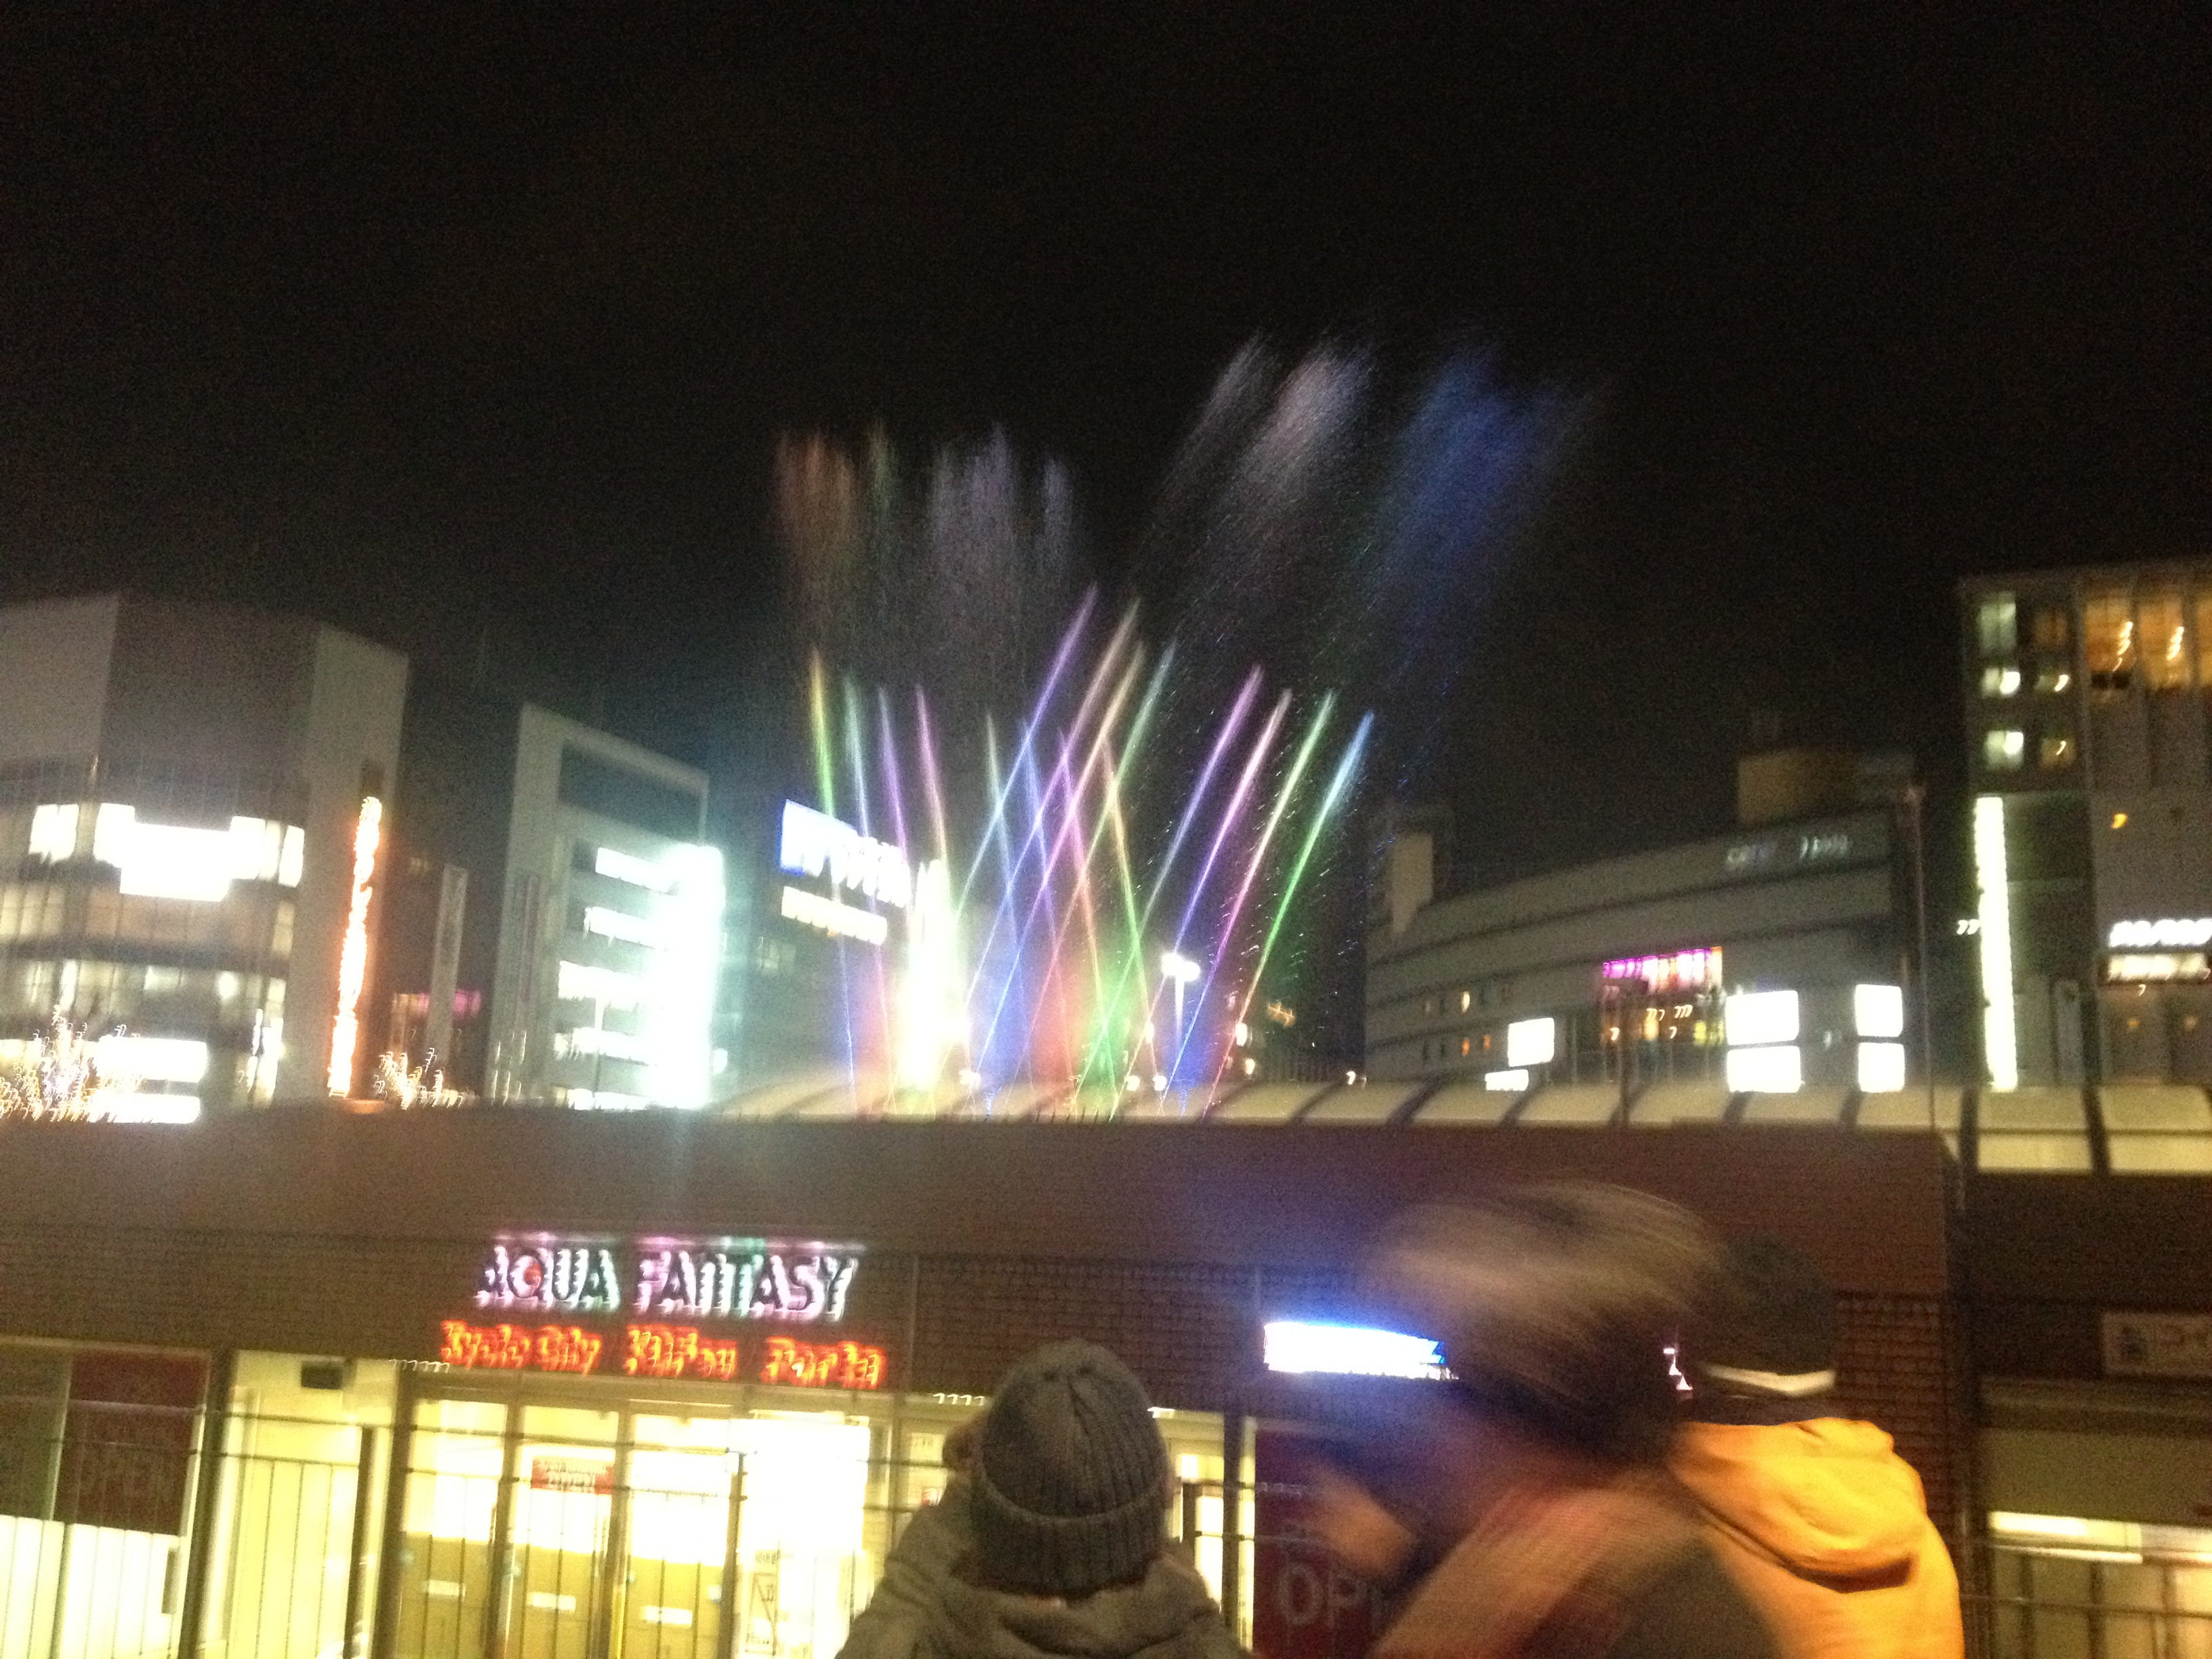 Fountain light show timed to classical music in Kyoto Station.